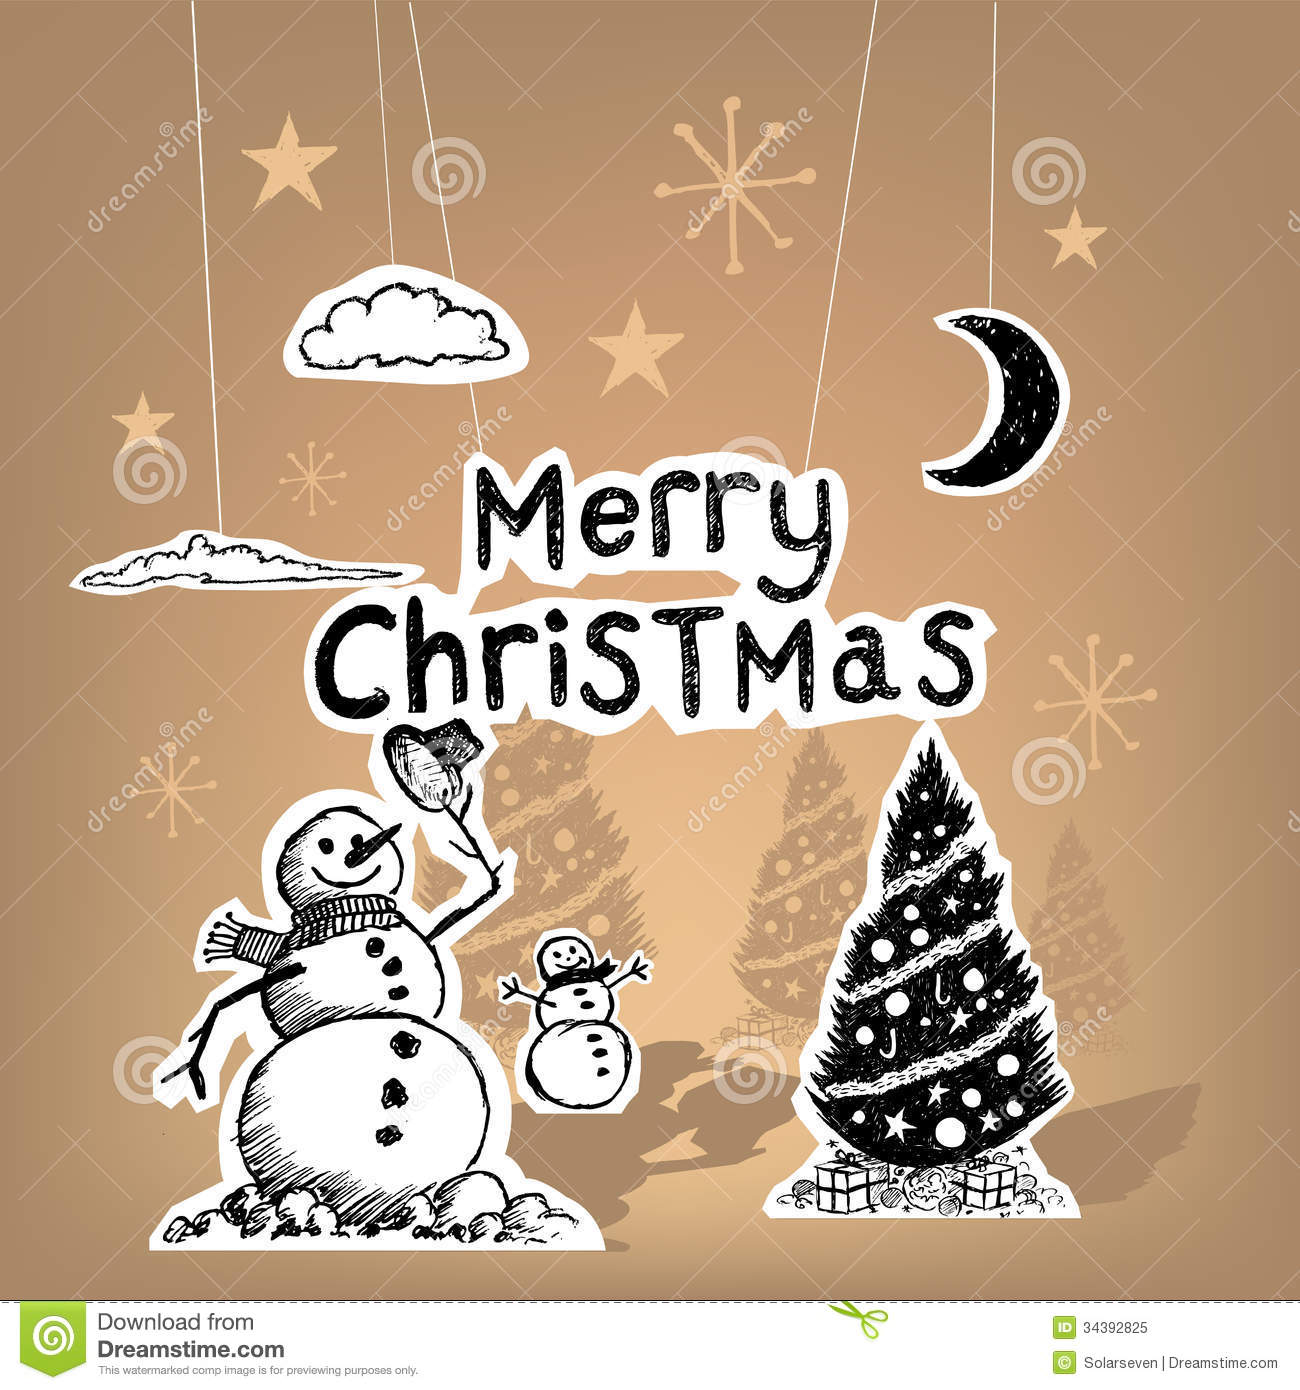 Merry Christmas Paper Royalty Free Stock Photo - Image ...